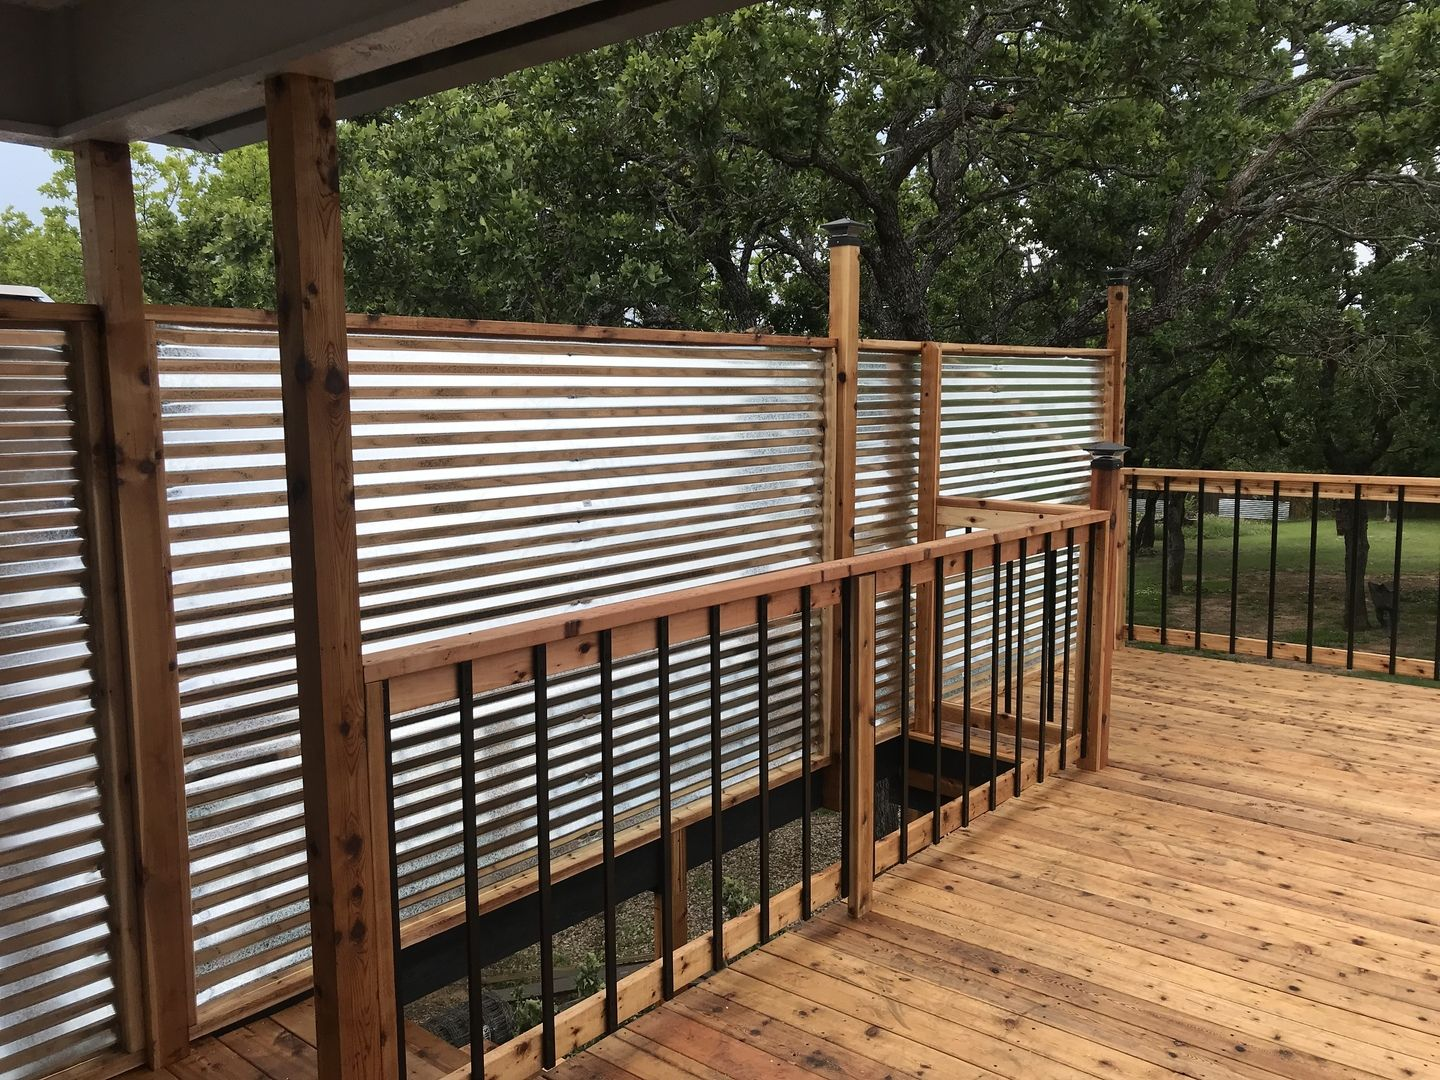 Traditional Face Mount Aluminum Balusters By Deckorators Deck Balusters Building A Deck Aluminum Decking